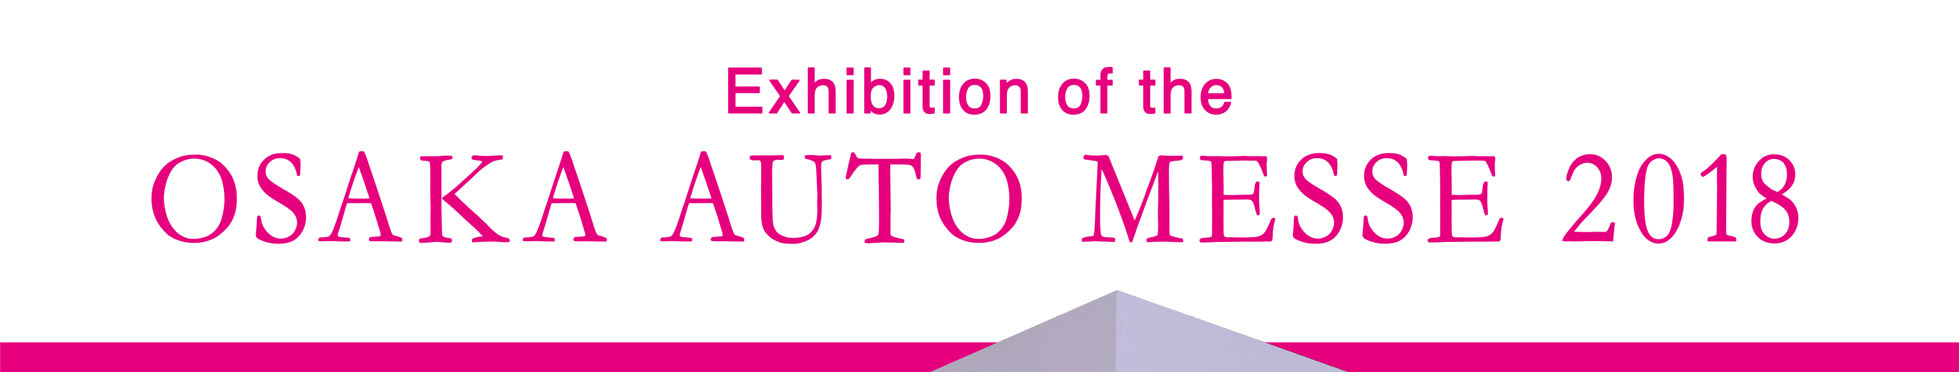 Exhibition of the OSAKA AUTO MESSE 2018 M'z SPEED